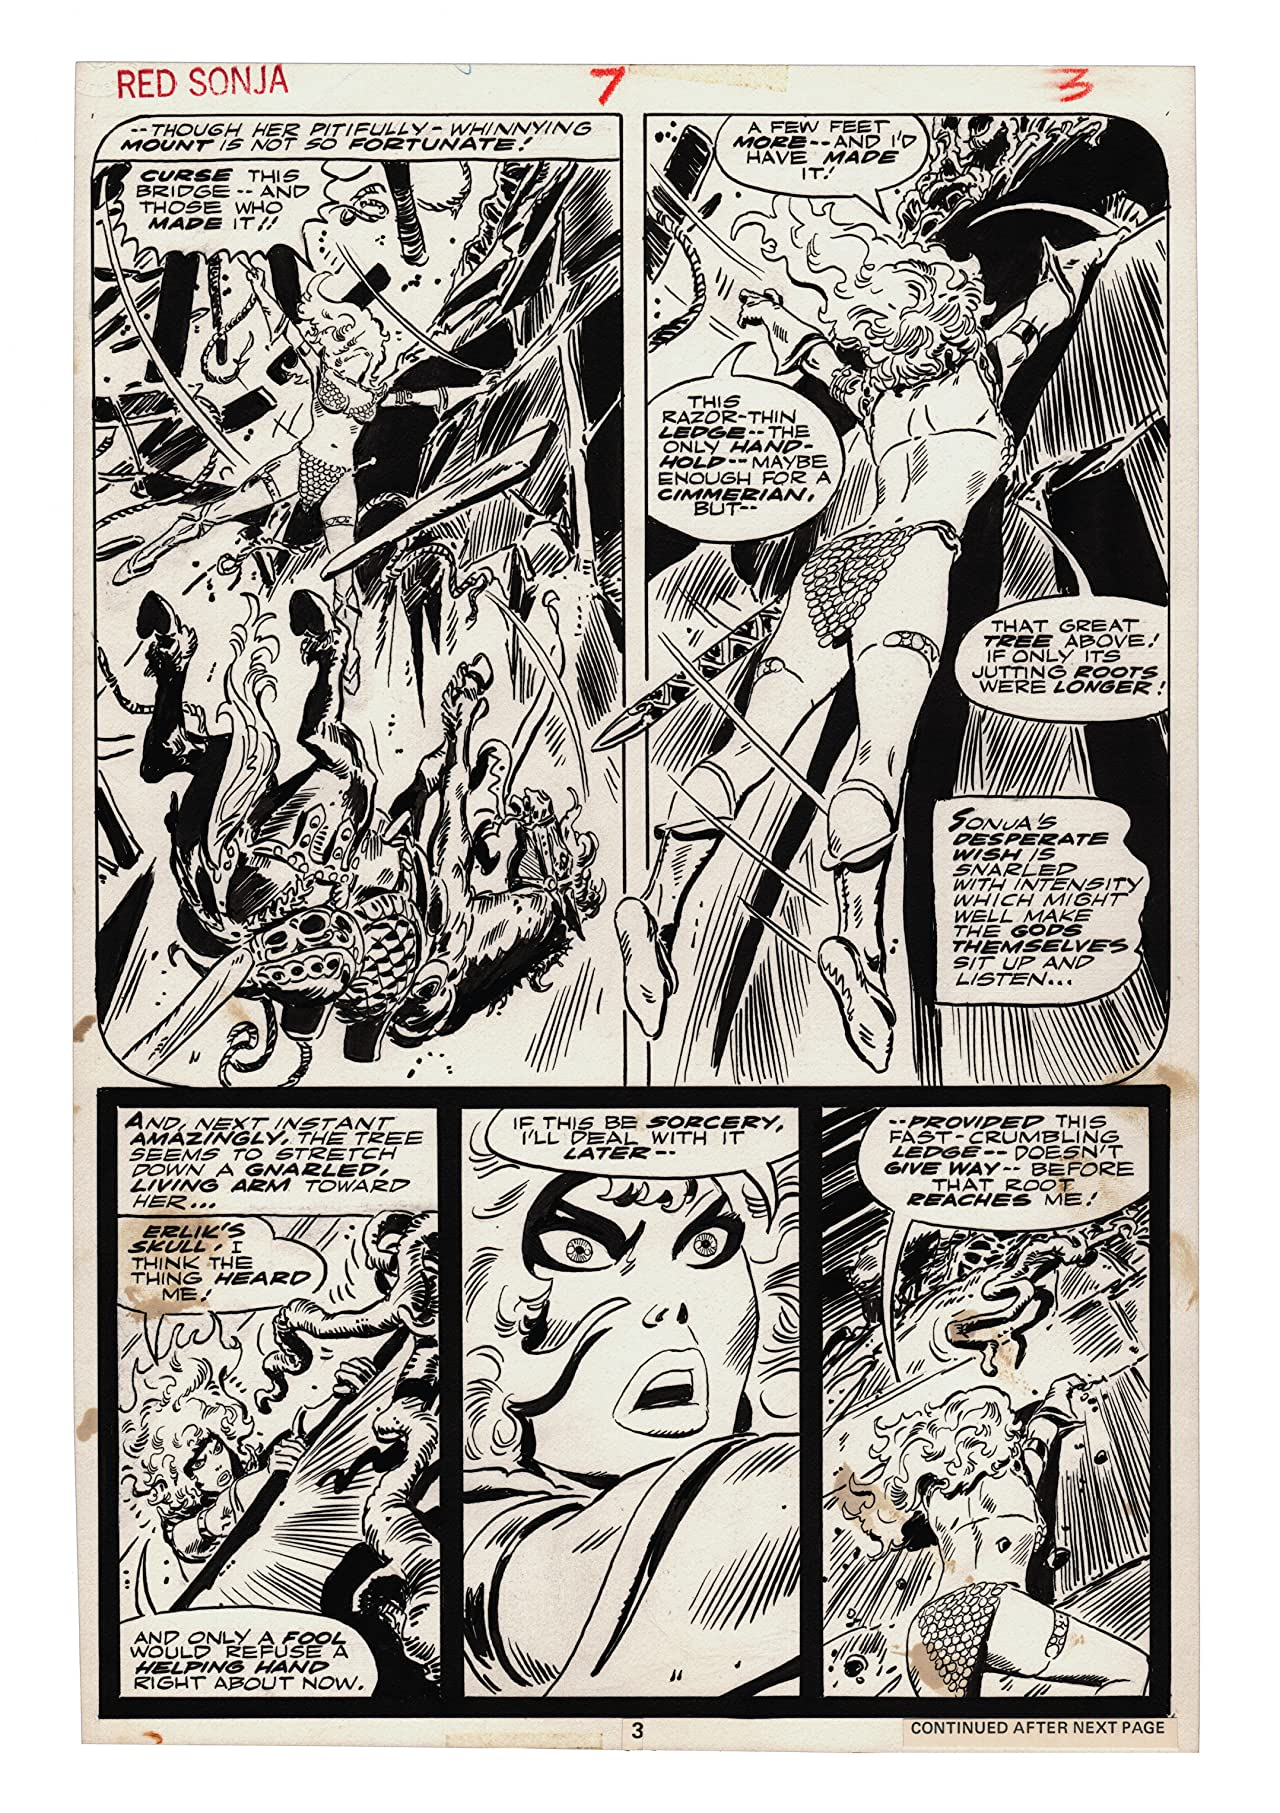 Frank Thorne's Red Sonja: Art Edition Vol. 3